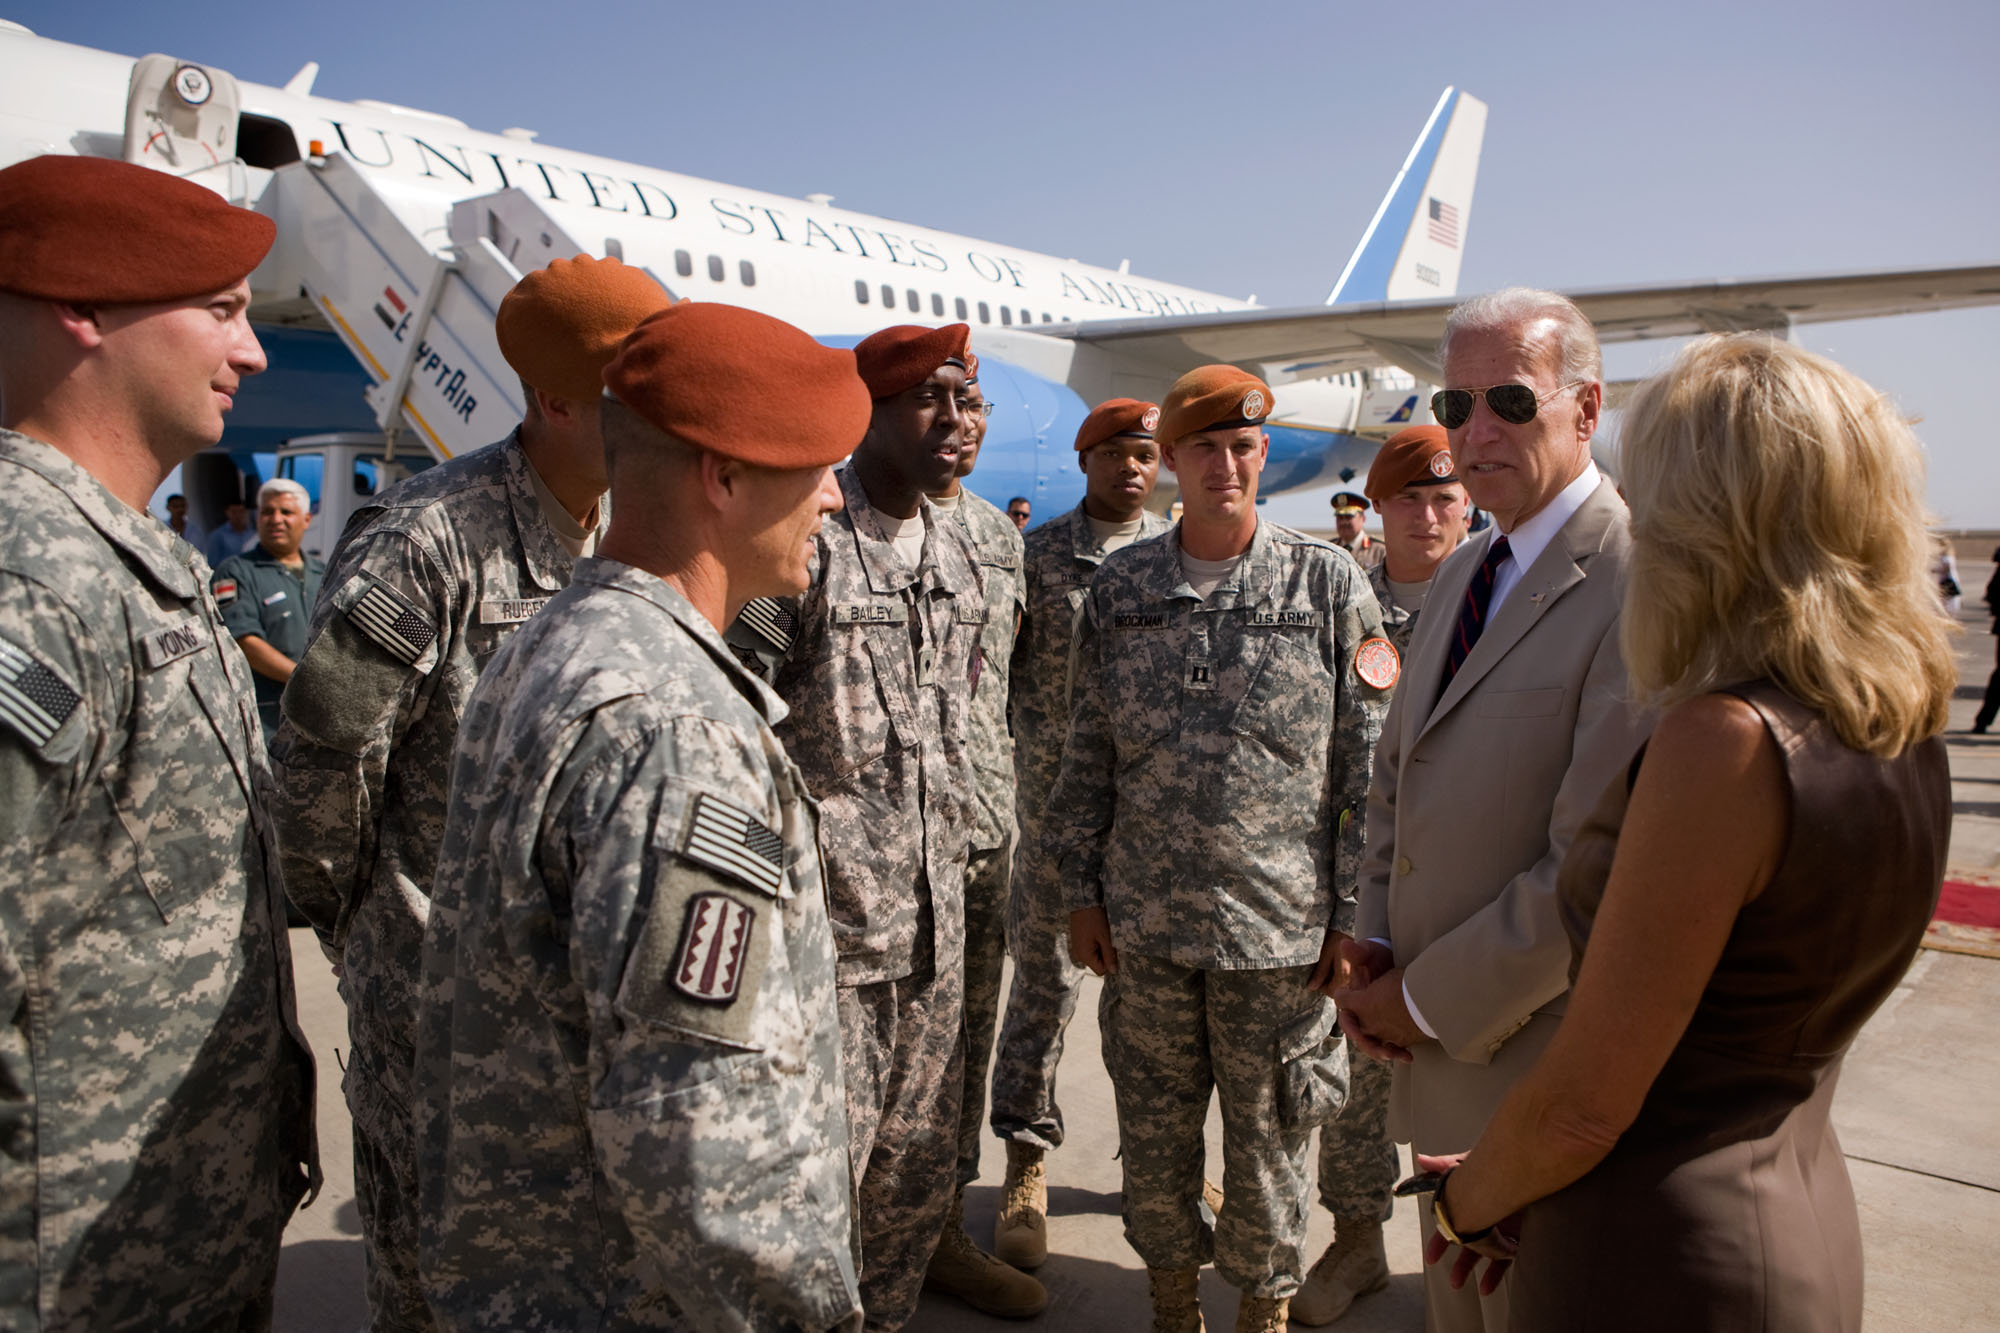 Vice President Joe Biden and Dr. Jill Biden Meet with U.S. Army Soldiers at the airport in Sharm El Sheikh, Egypt